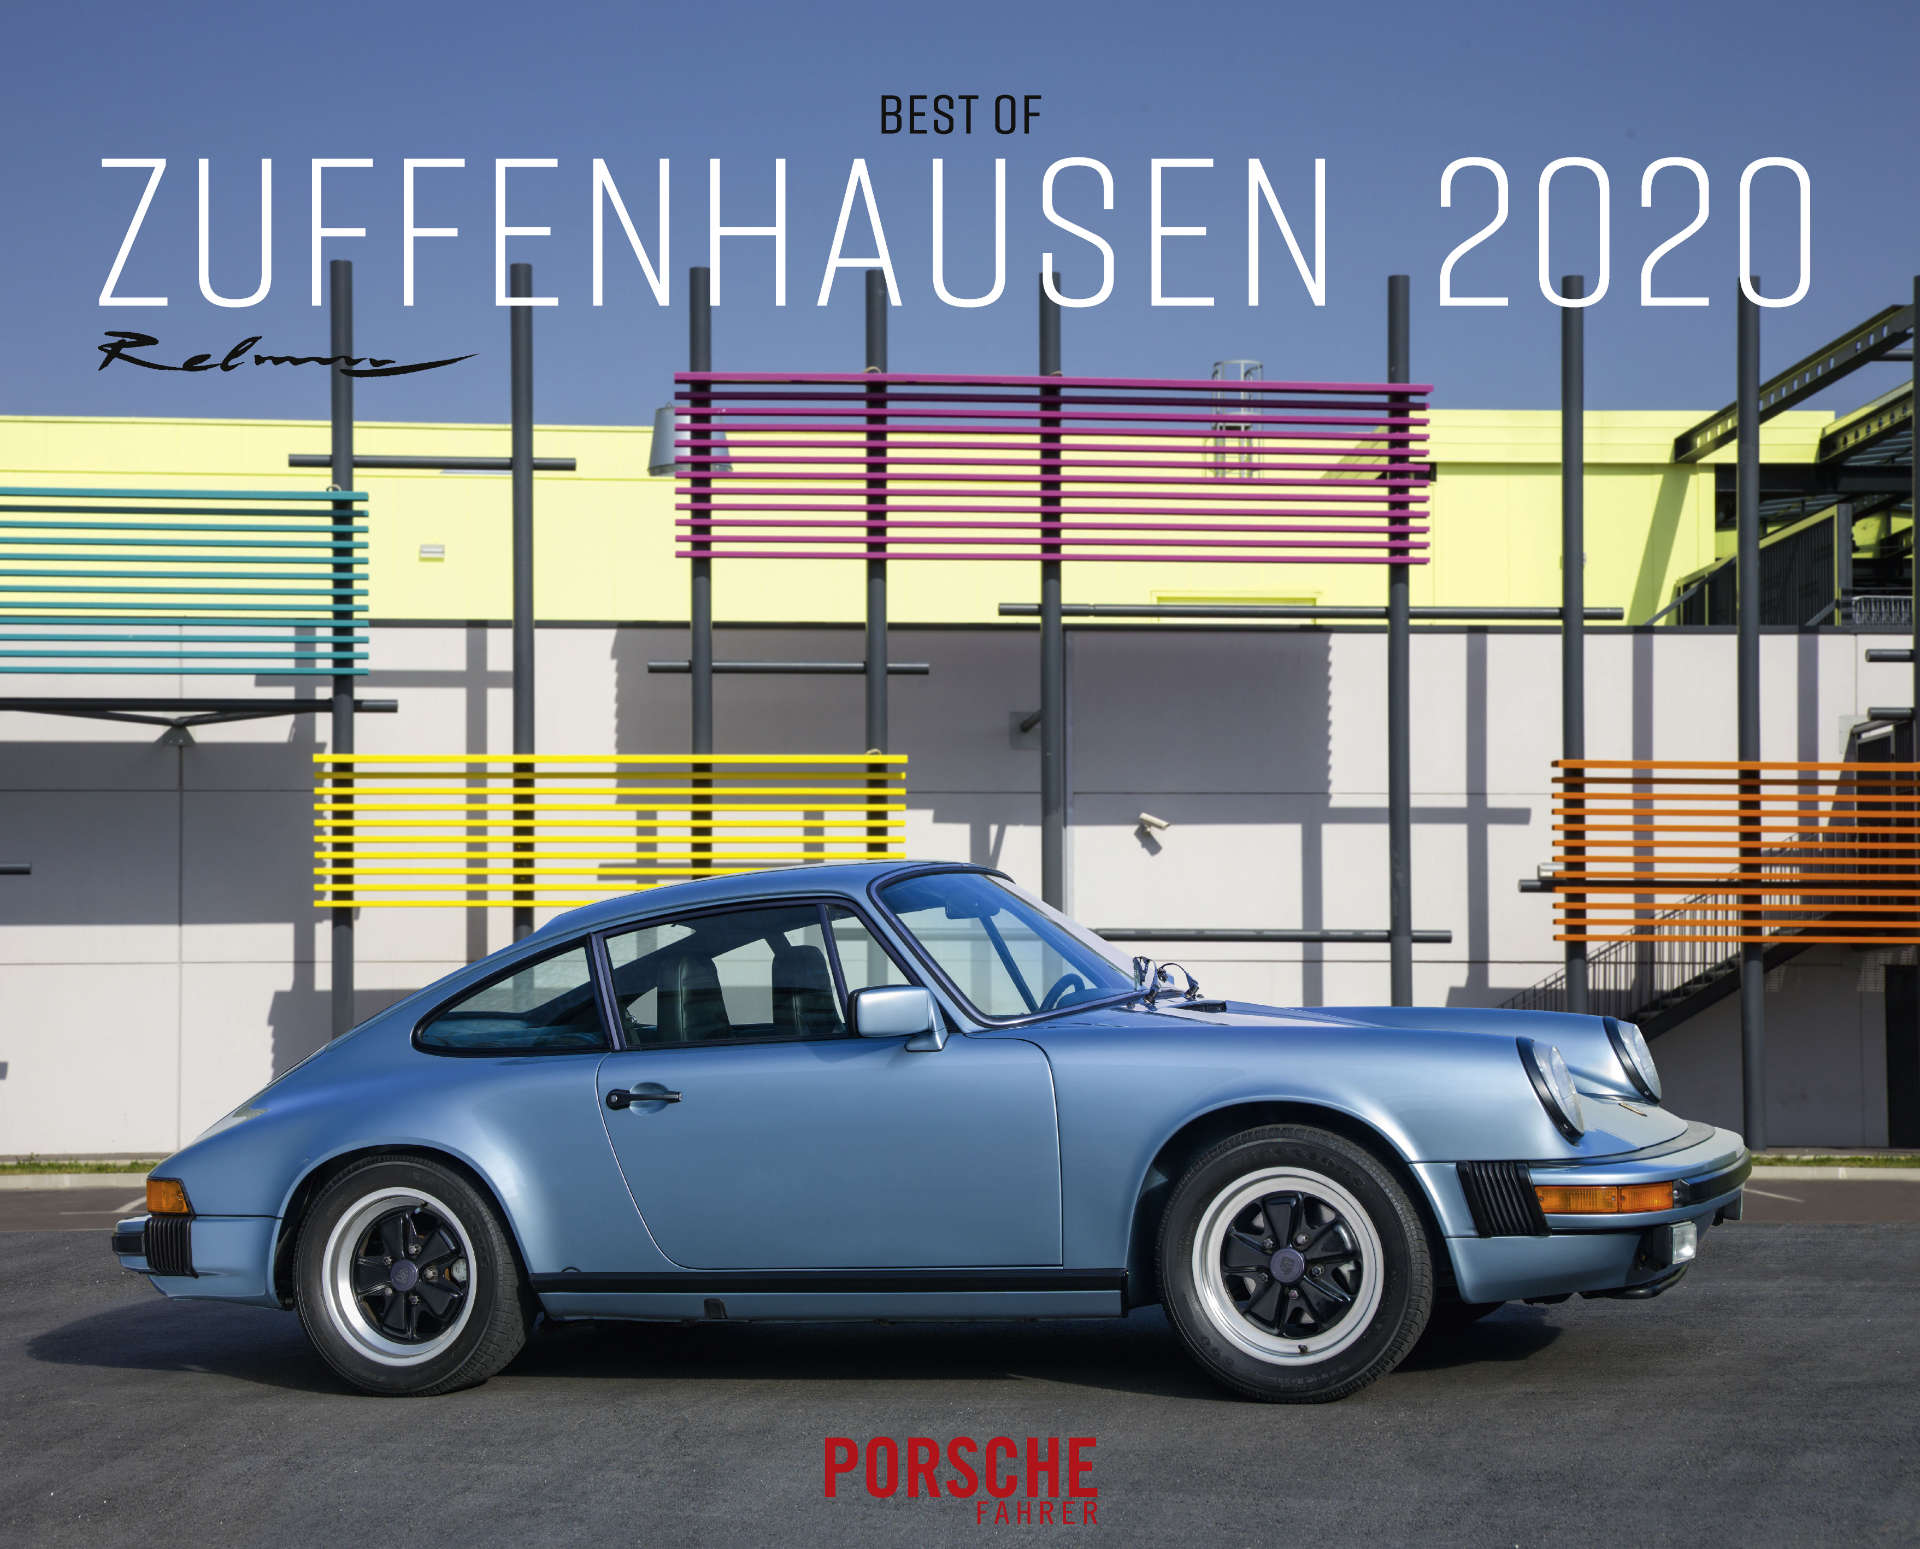 Best of Zuffenhausen 2020